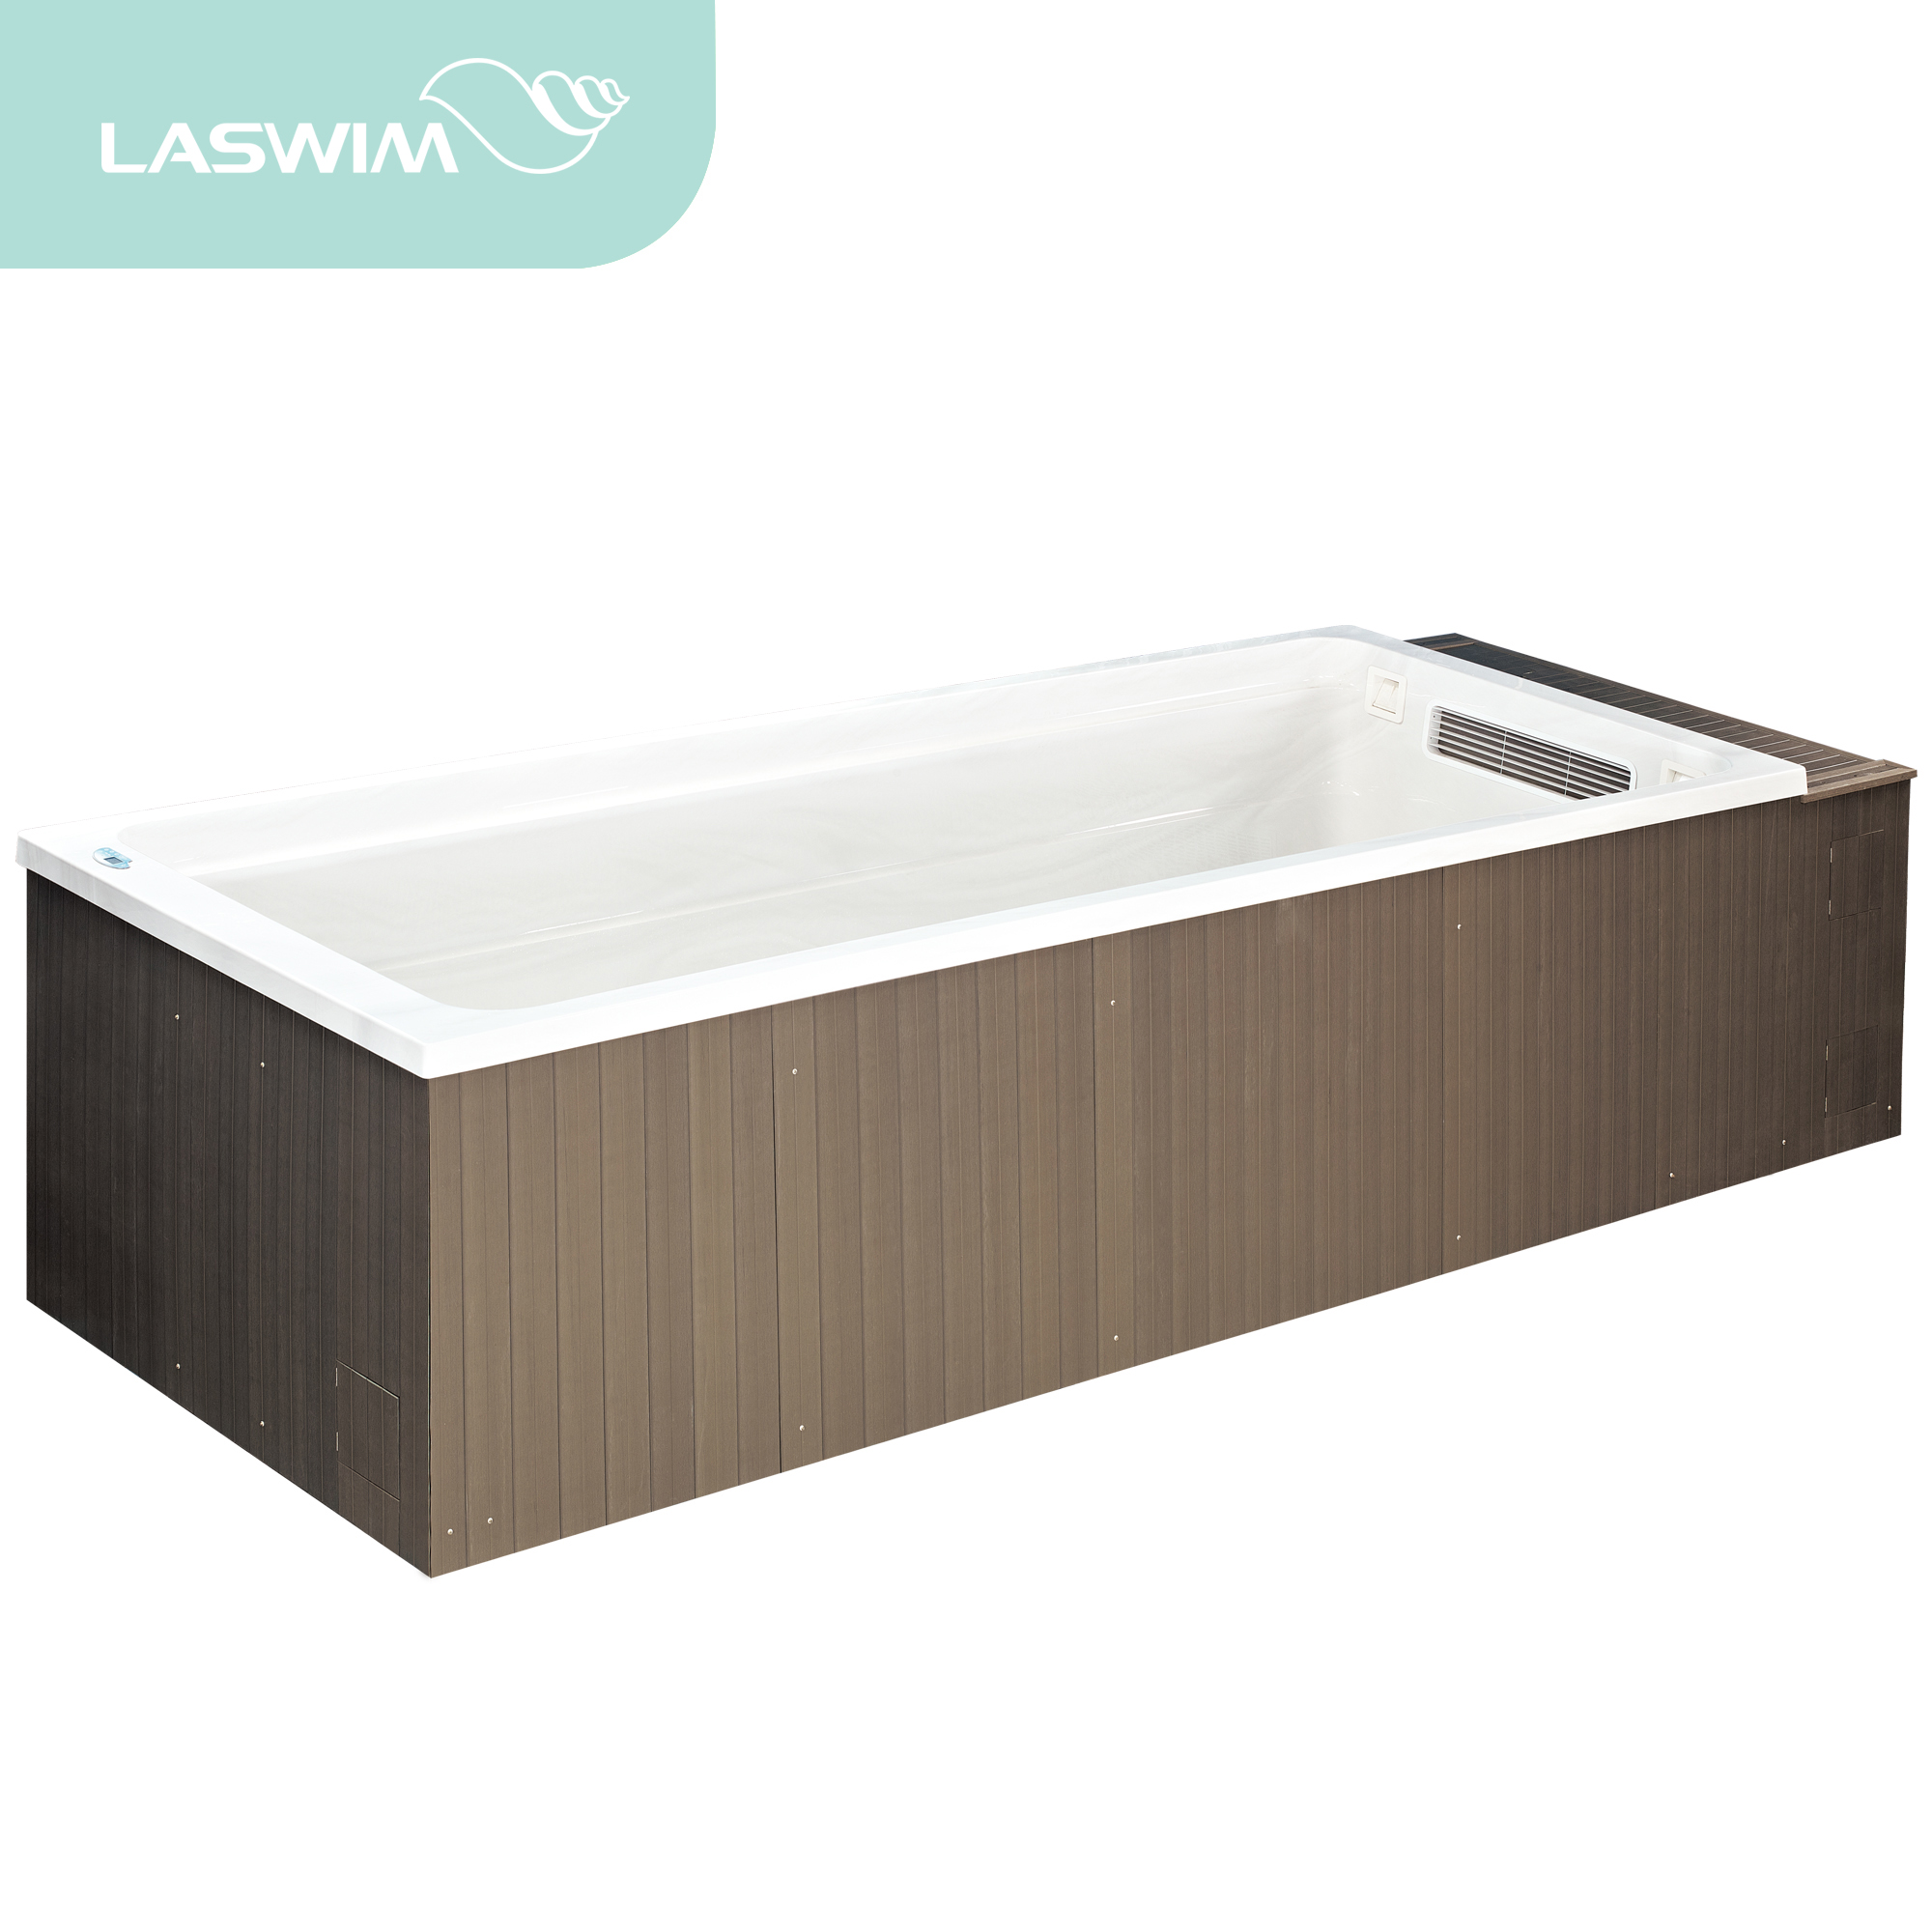 LASWIM Swim Spa (EP-39)